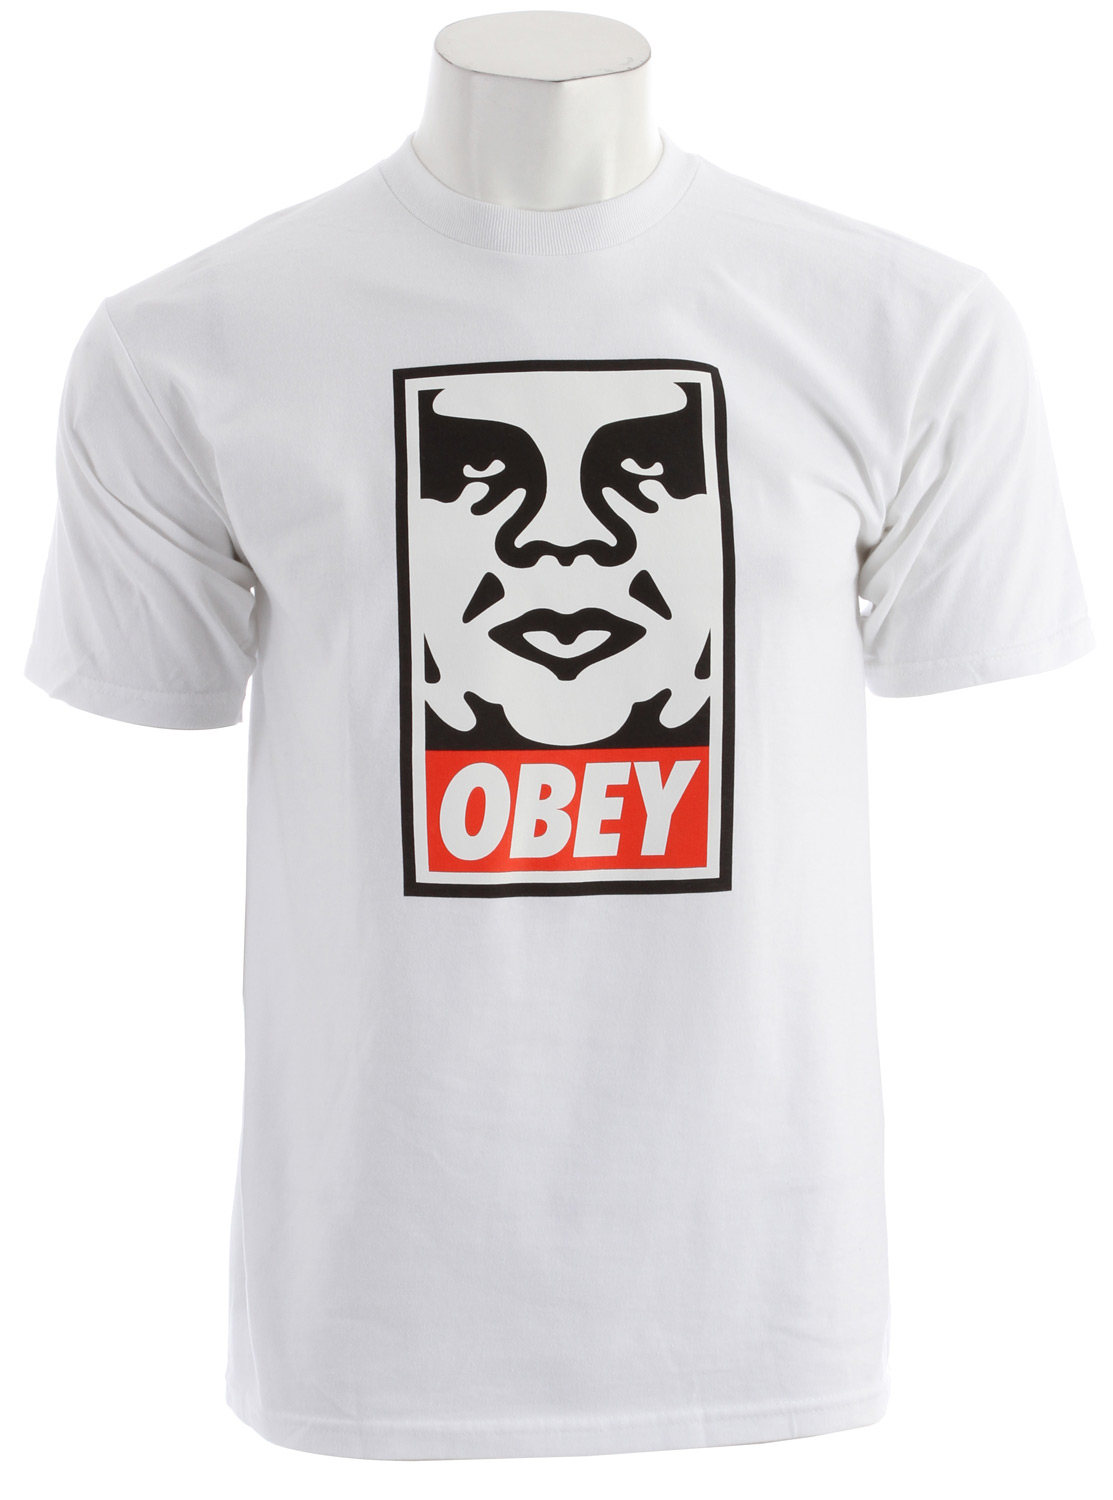 Key Features of the Obey Obey Icon Face Standard Issue Basic T-Shirt: OBEY medium weight Slim fit tee with binded rib neck 50% Polyester / 29% Cotton / 25% Rayon - $20.95